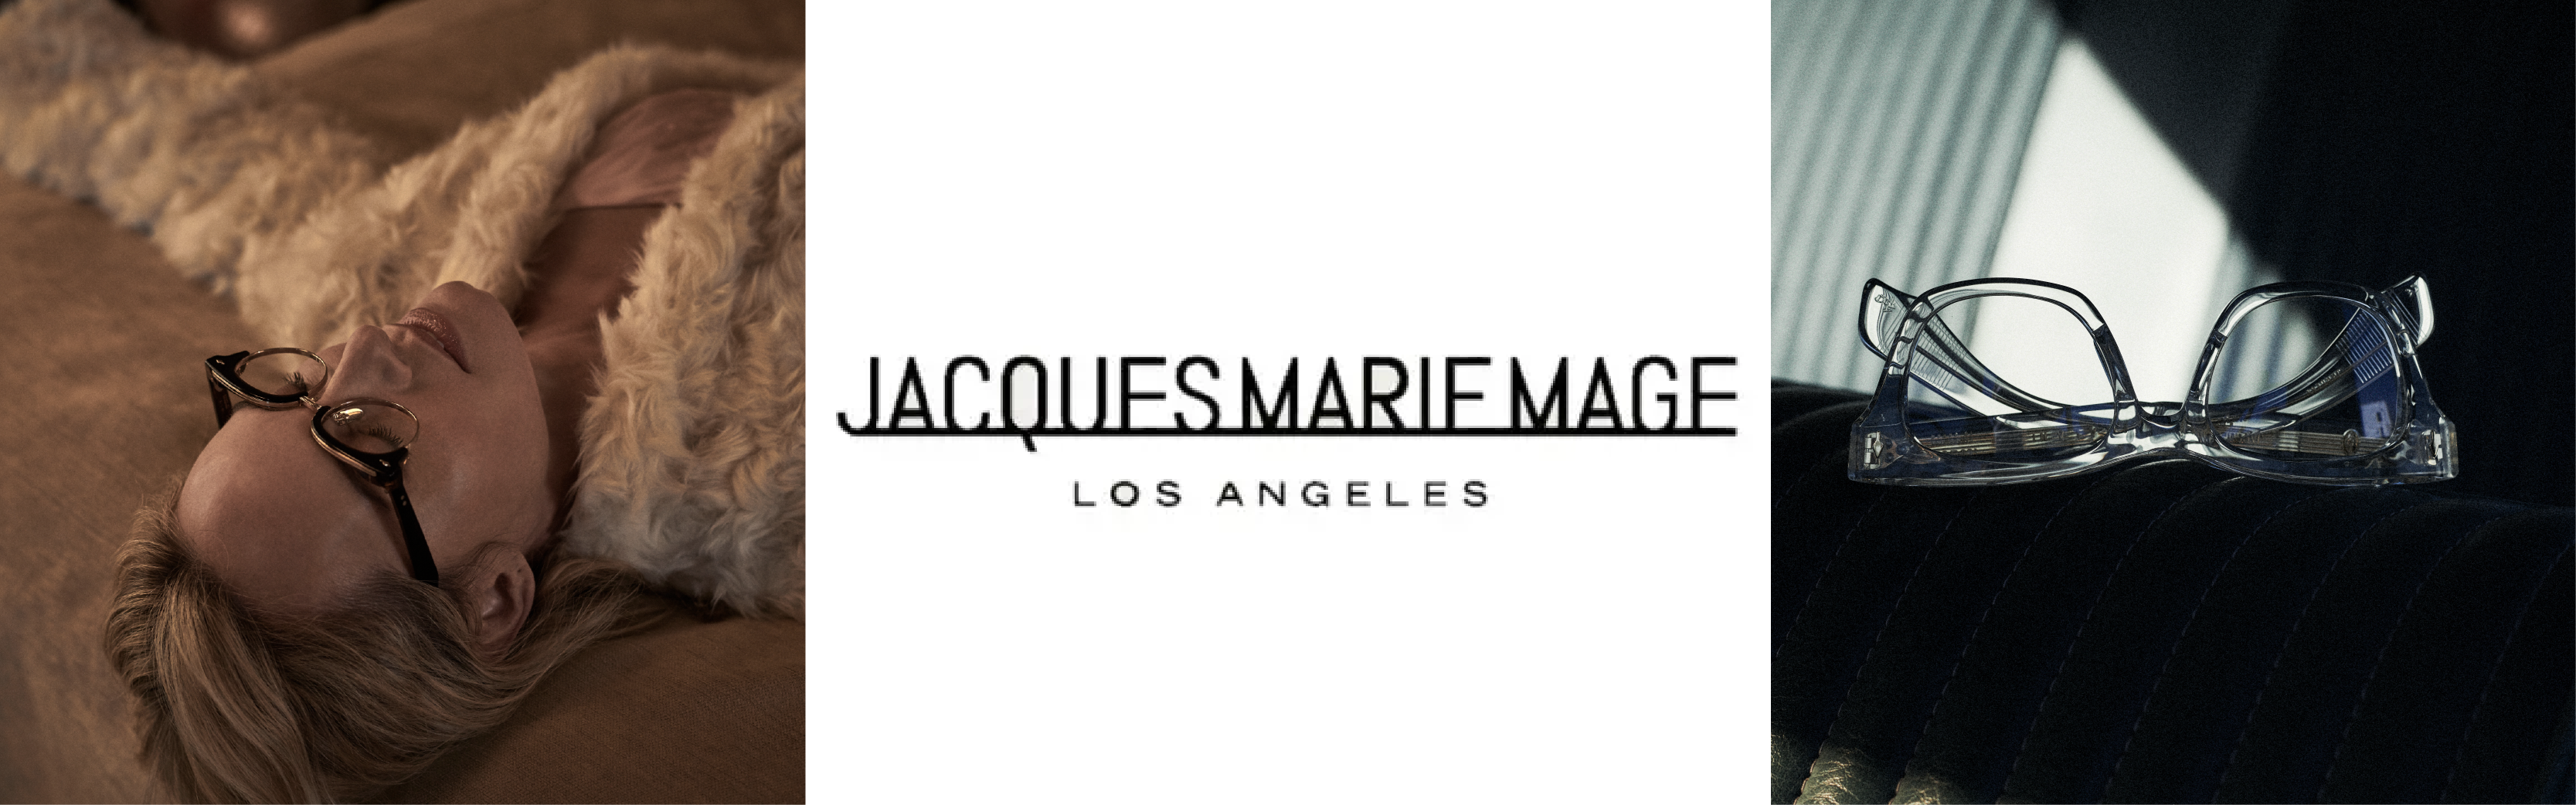 Jacques Marie Mage Optical